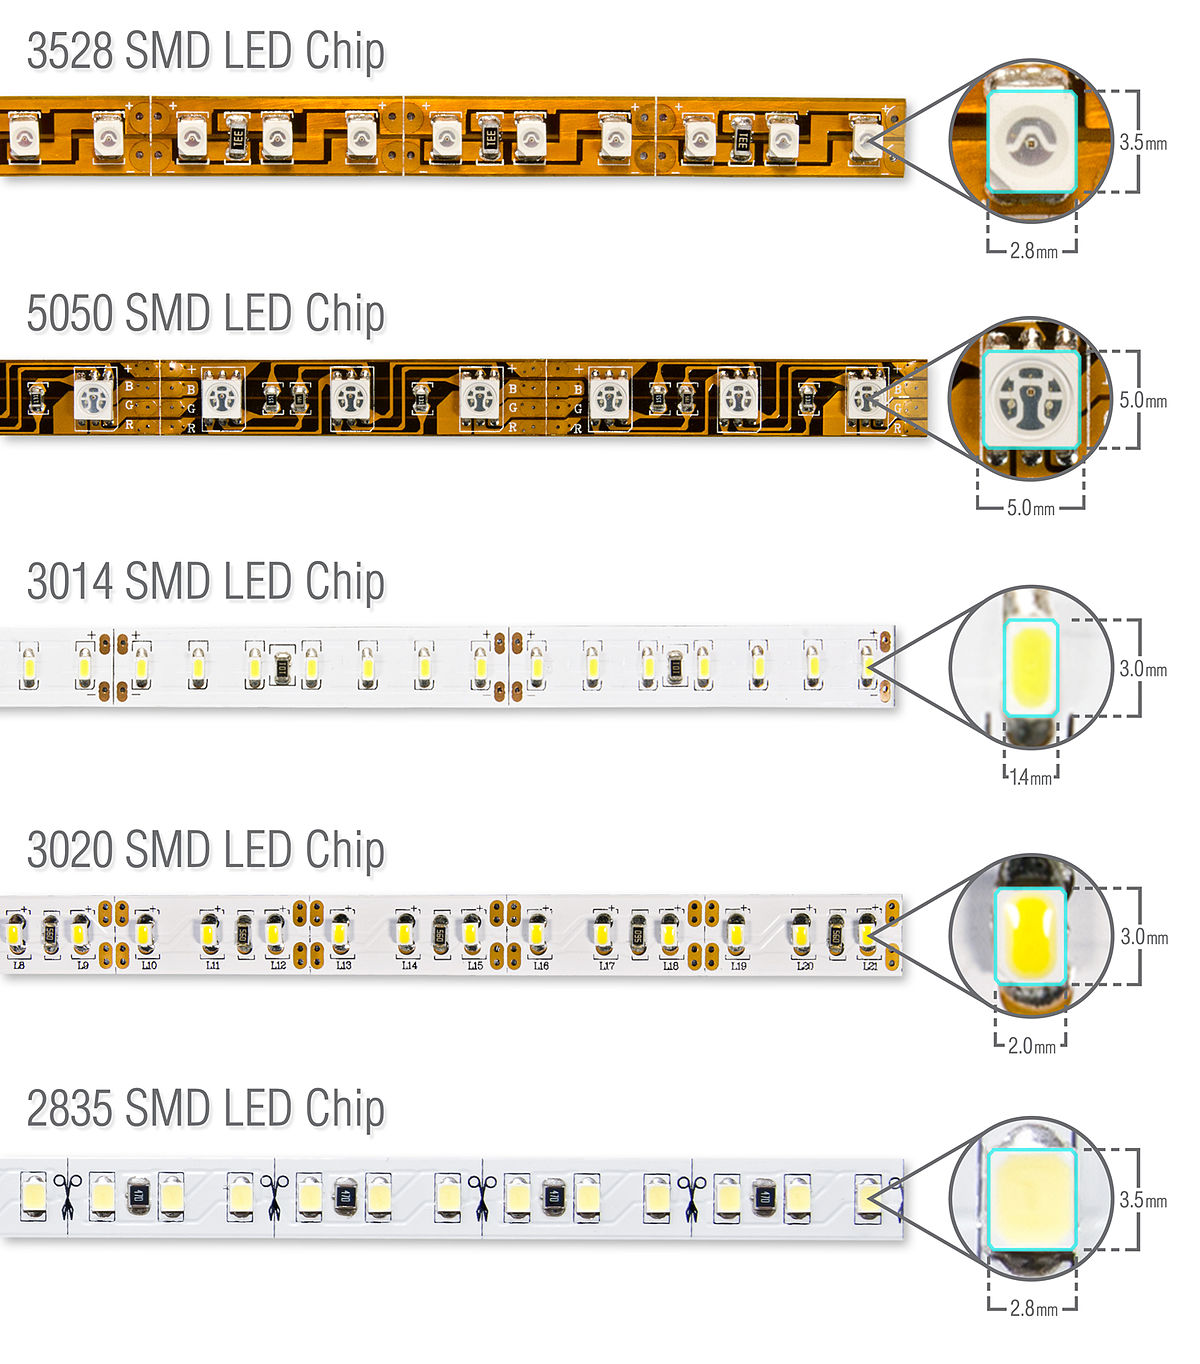 1200px SMD LED comparison 5050 2835 3528 3014 Flexfireleds led strip light wikipedia 5050 Matamoros at readyjetset.co